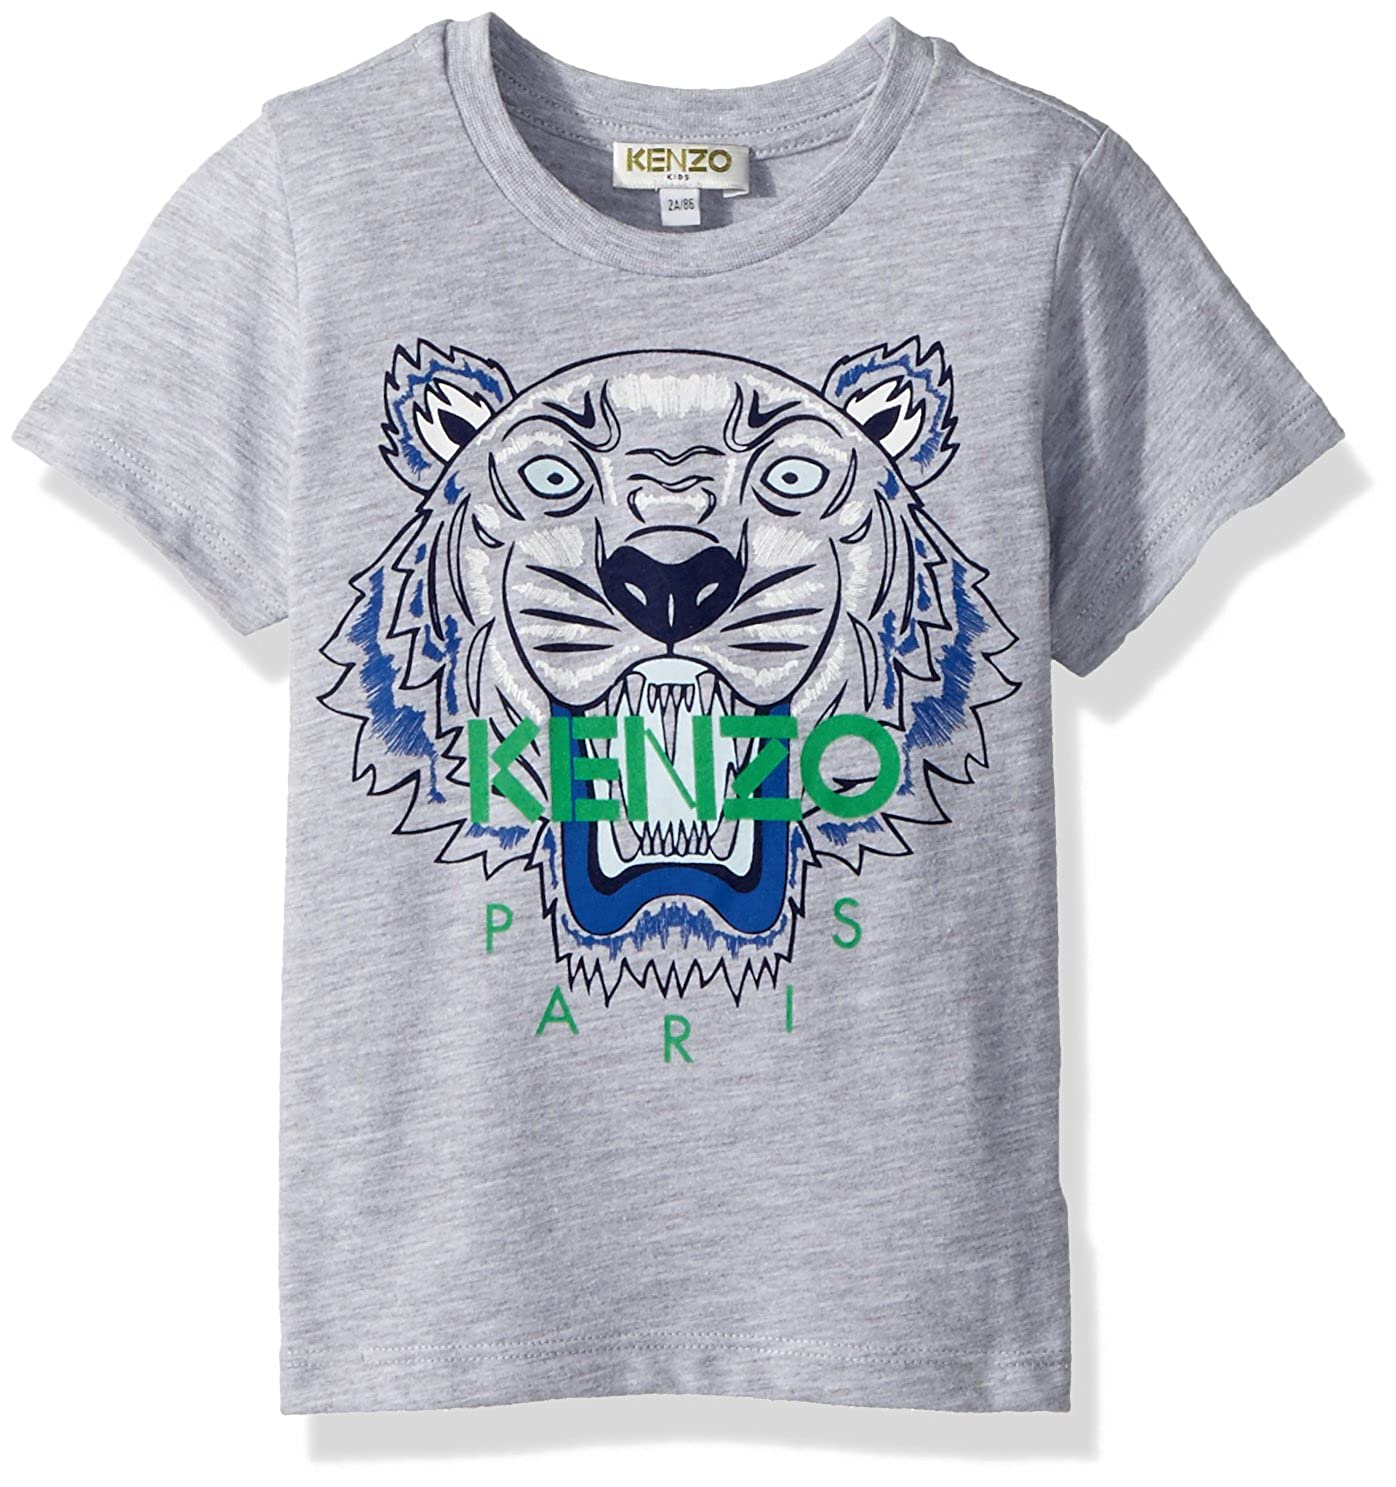 e07c2ea4 He\'s ready to roar in this Kenzo™ Classic Tiger Tee.Crew neckline. Short  sleeves. Brand name and tiger graphic at center front.Straight hemline.